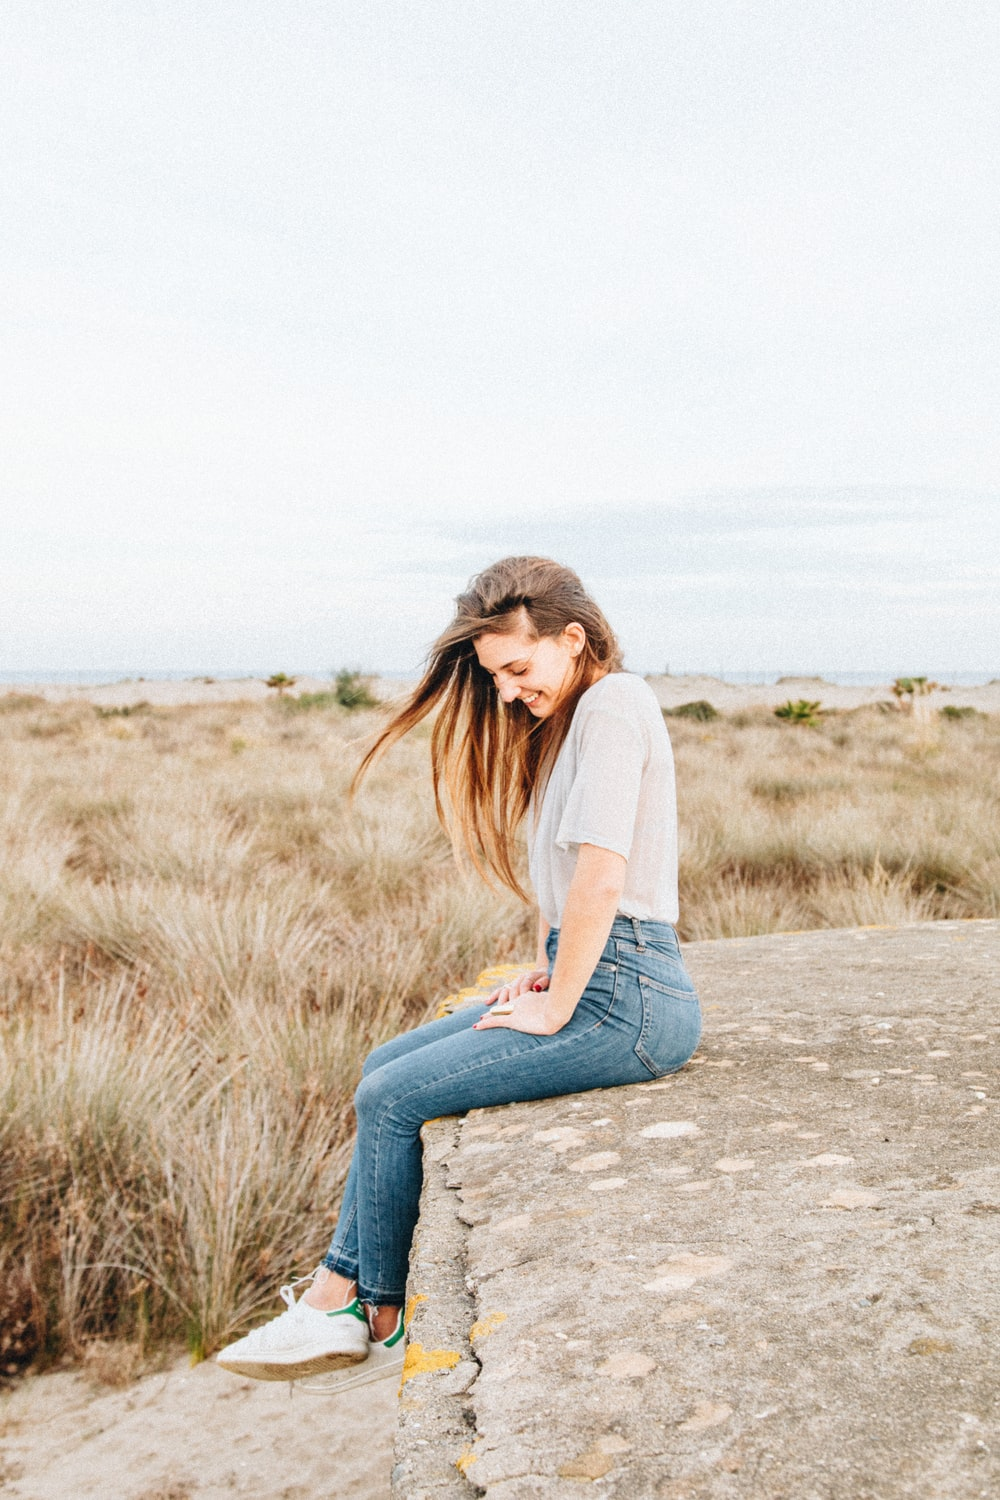 laughing woman sitting on concrete surrounded by brown grass